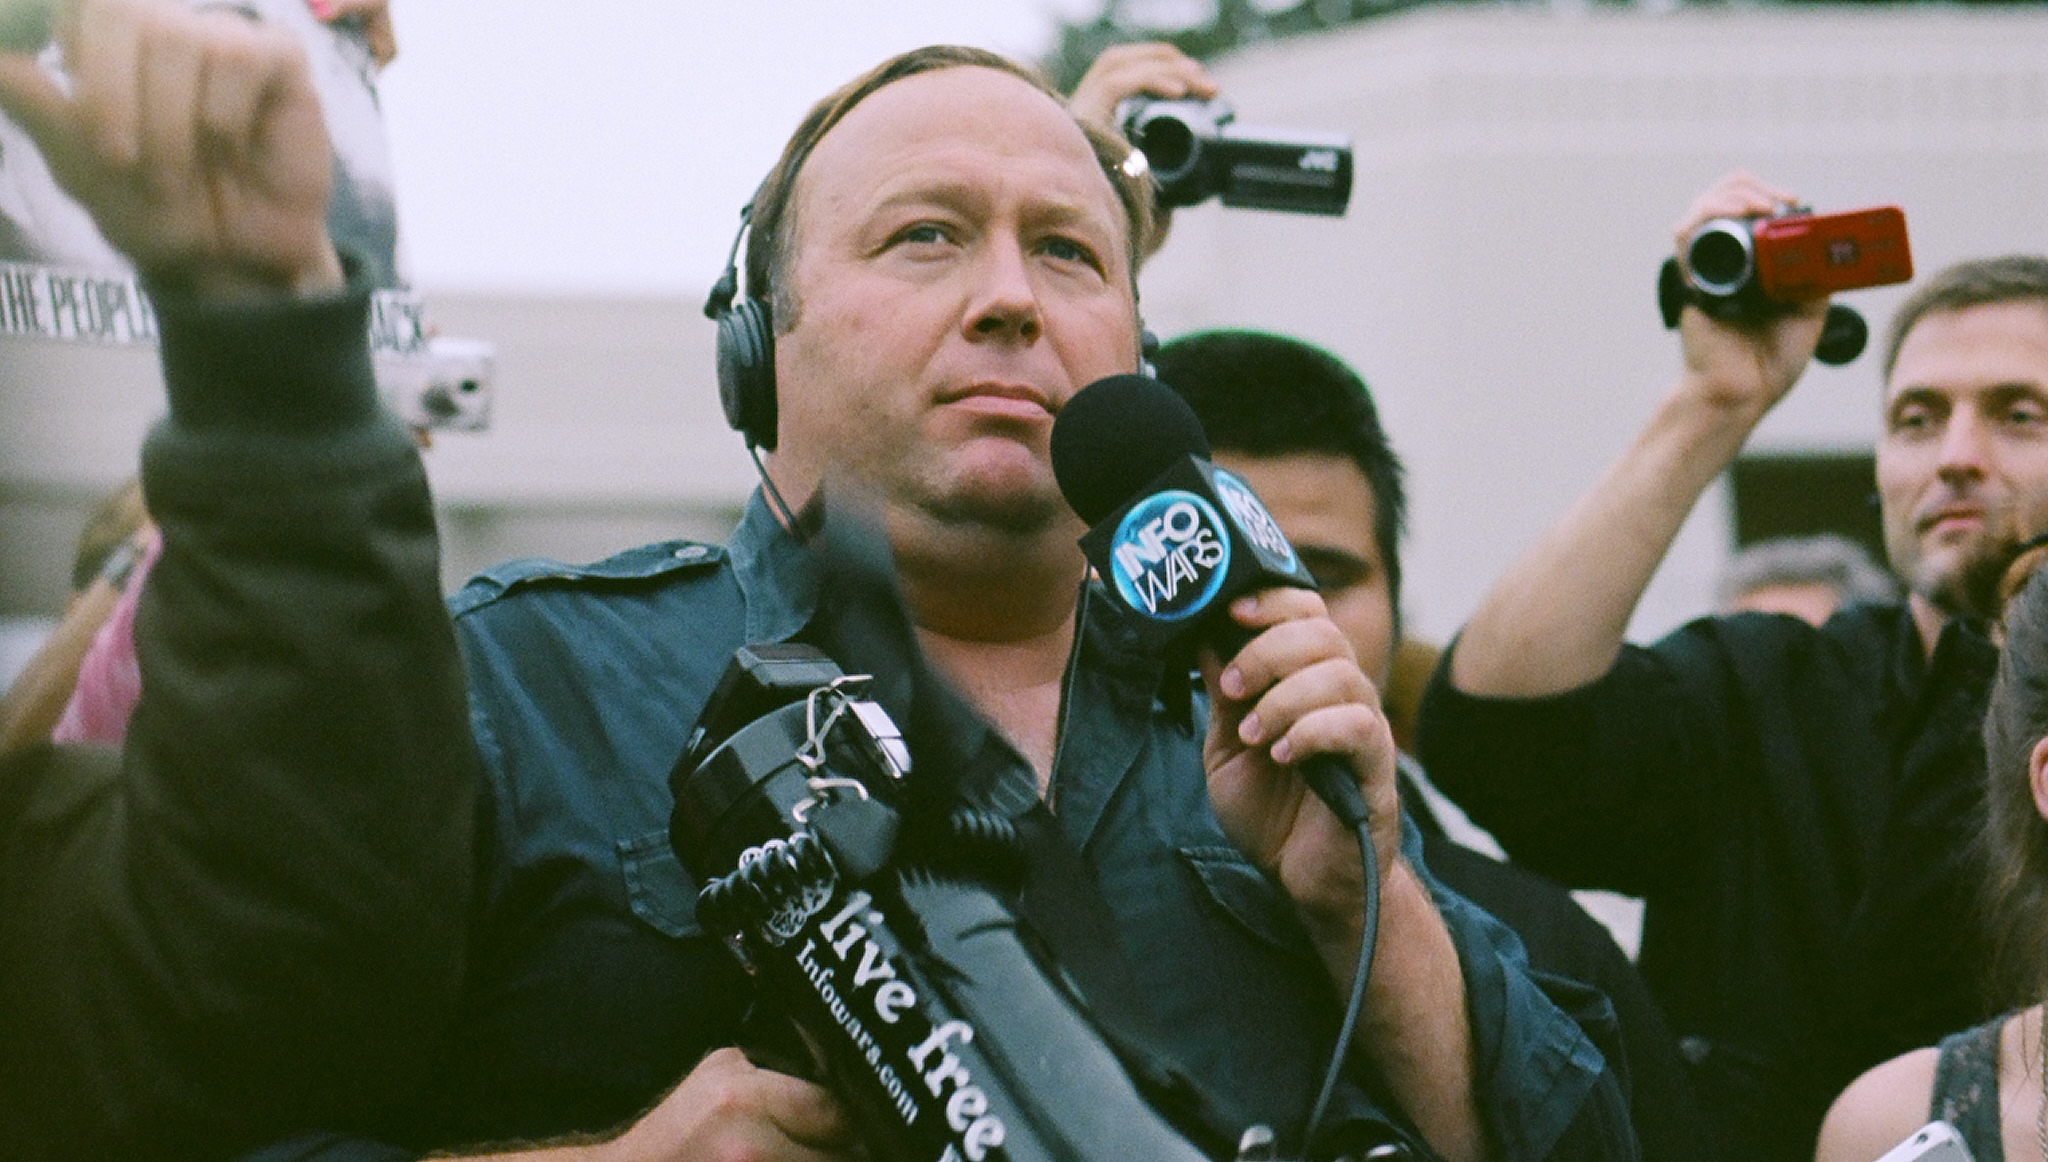 youtube removes alex jones channel for violating its community guidelines